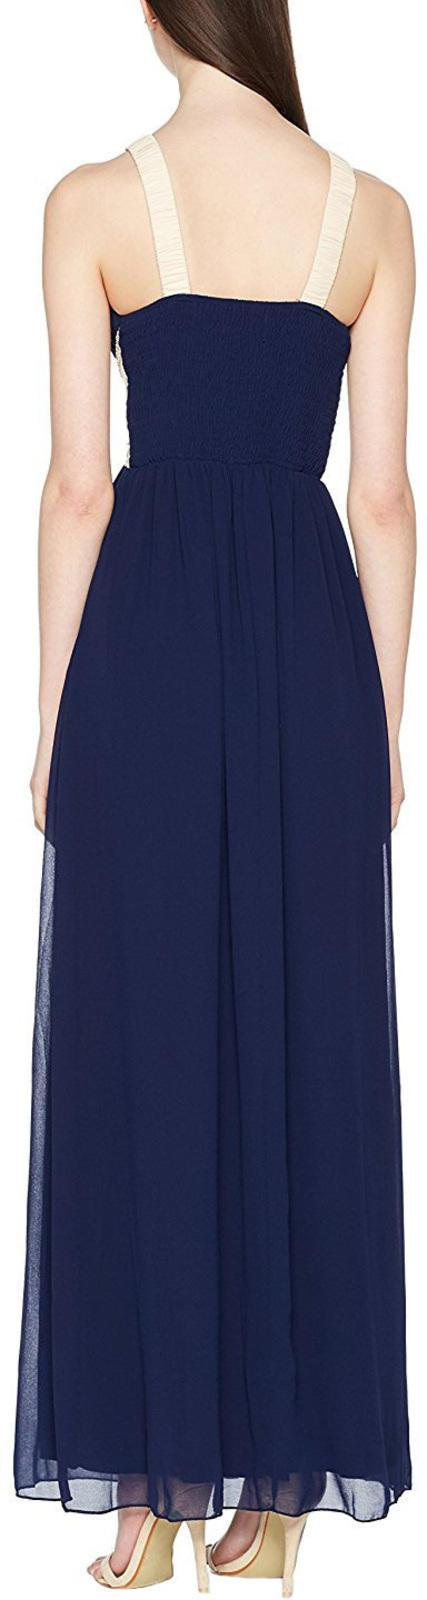 Little Mistress Empire Maxi Dress Navy